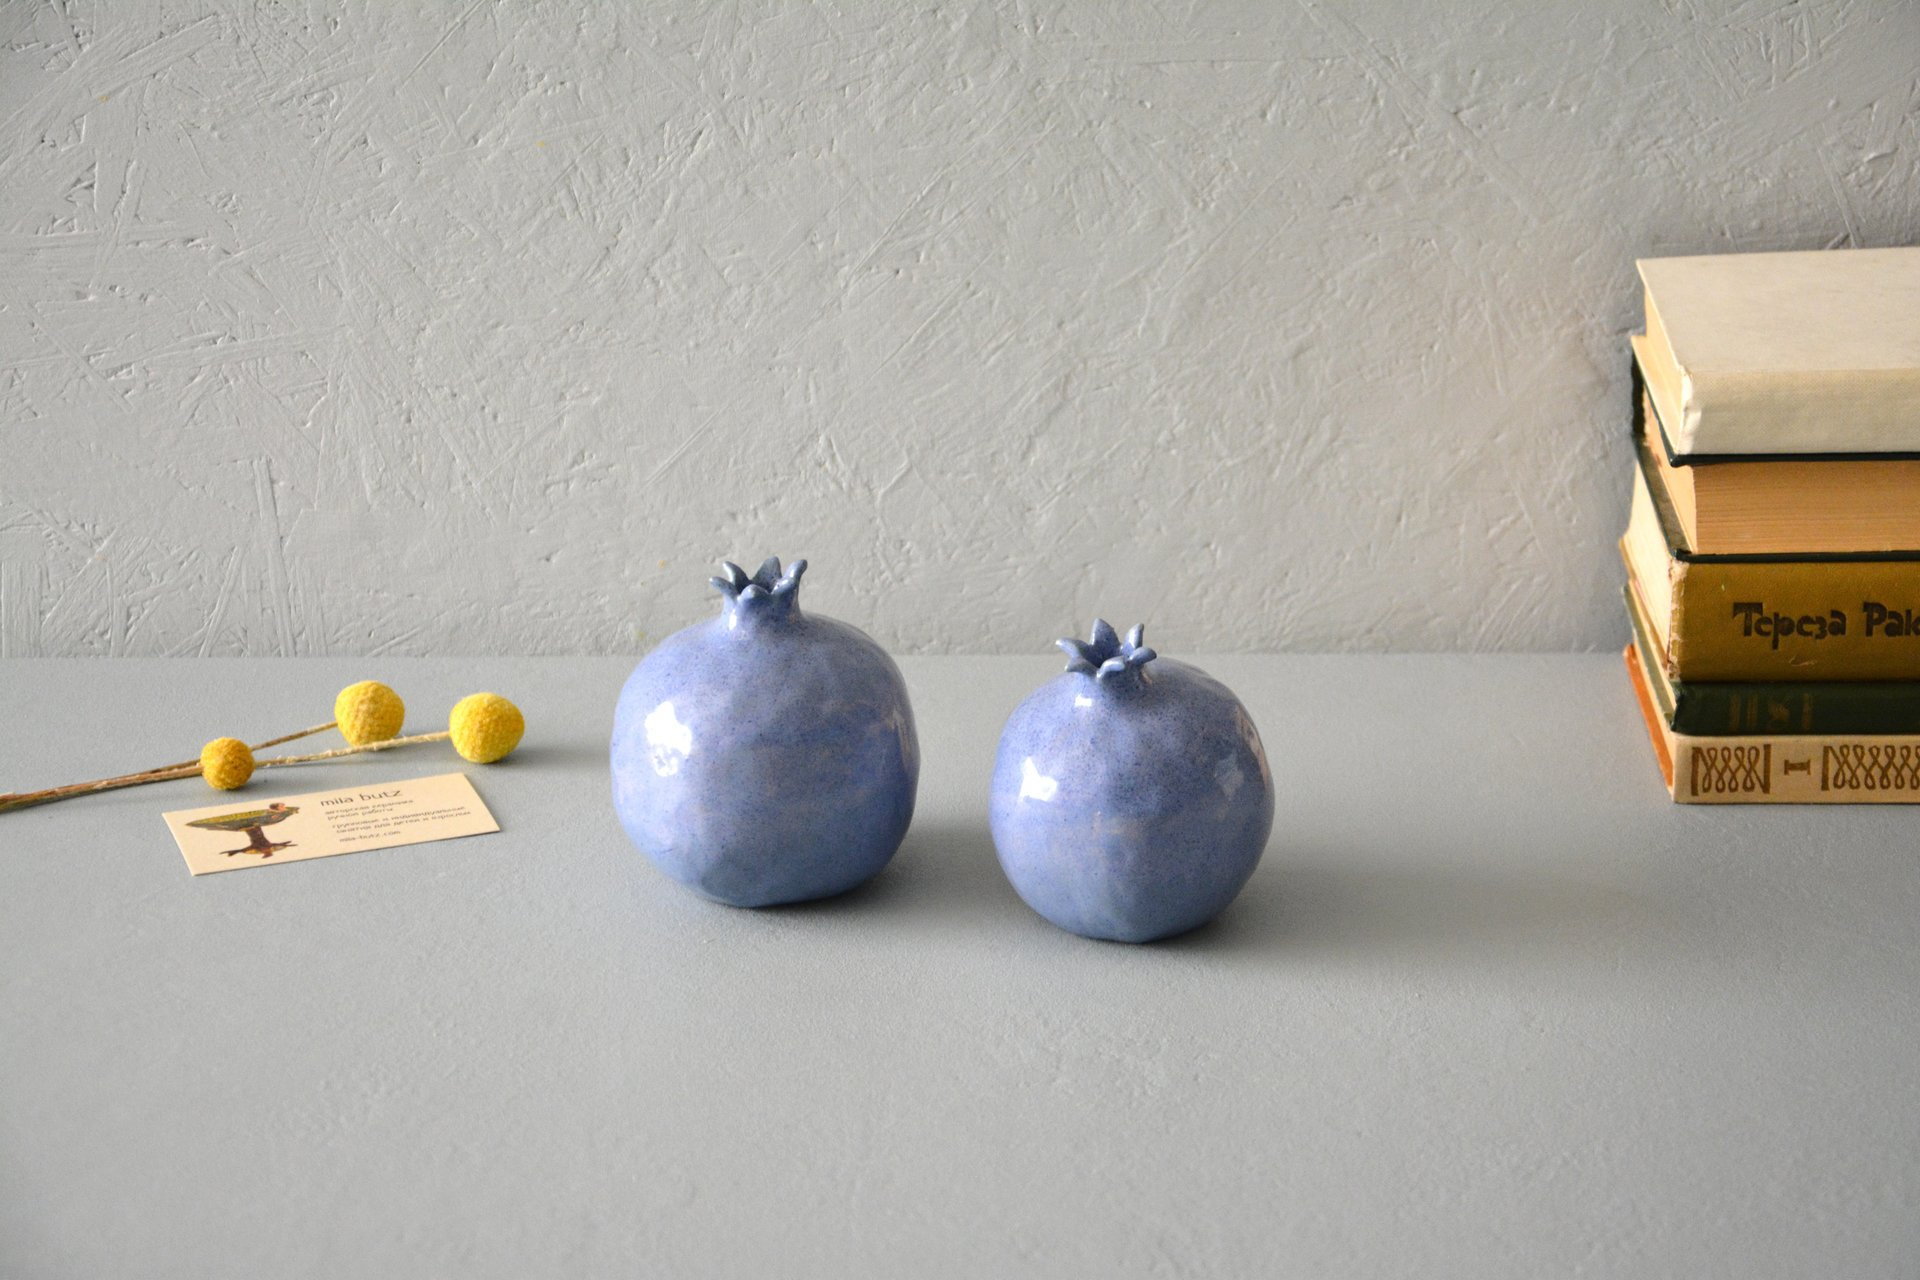 Two blue ceramic pomegranates, height - 10 cm, photo 2 of 5.